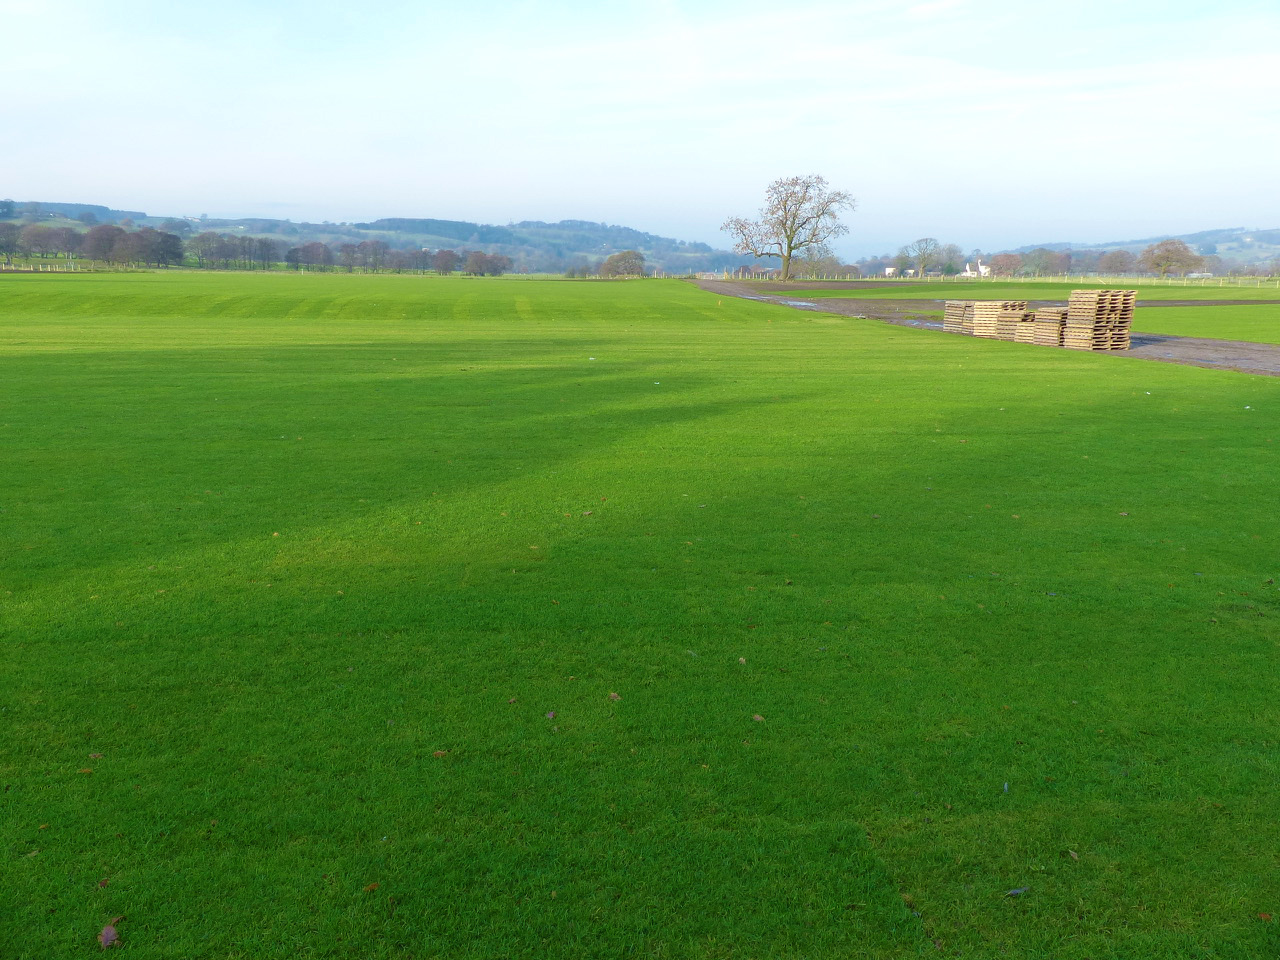 The pitch is developing well, with Turfdry implementing a maintenance programme until handover.